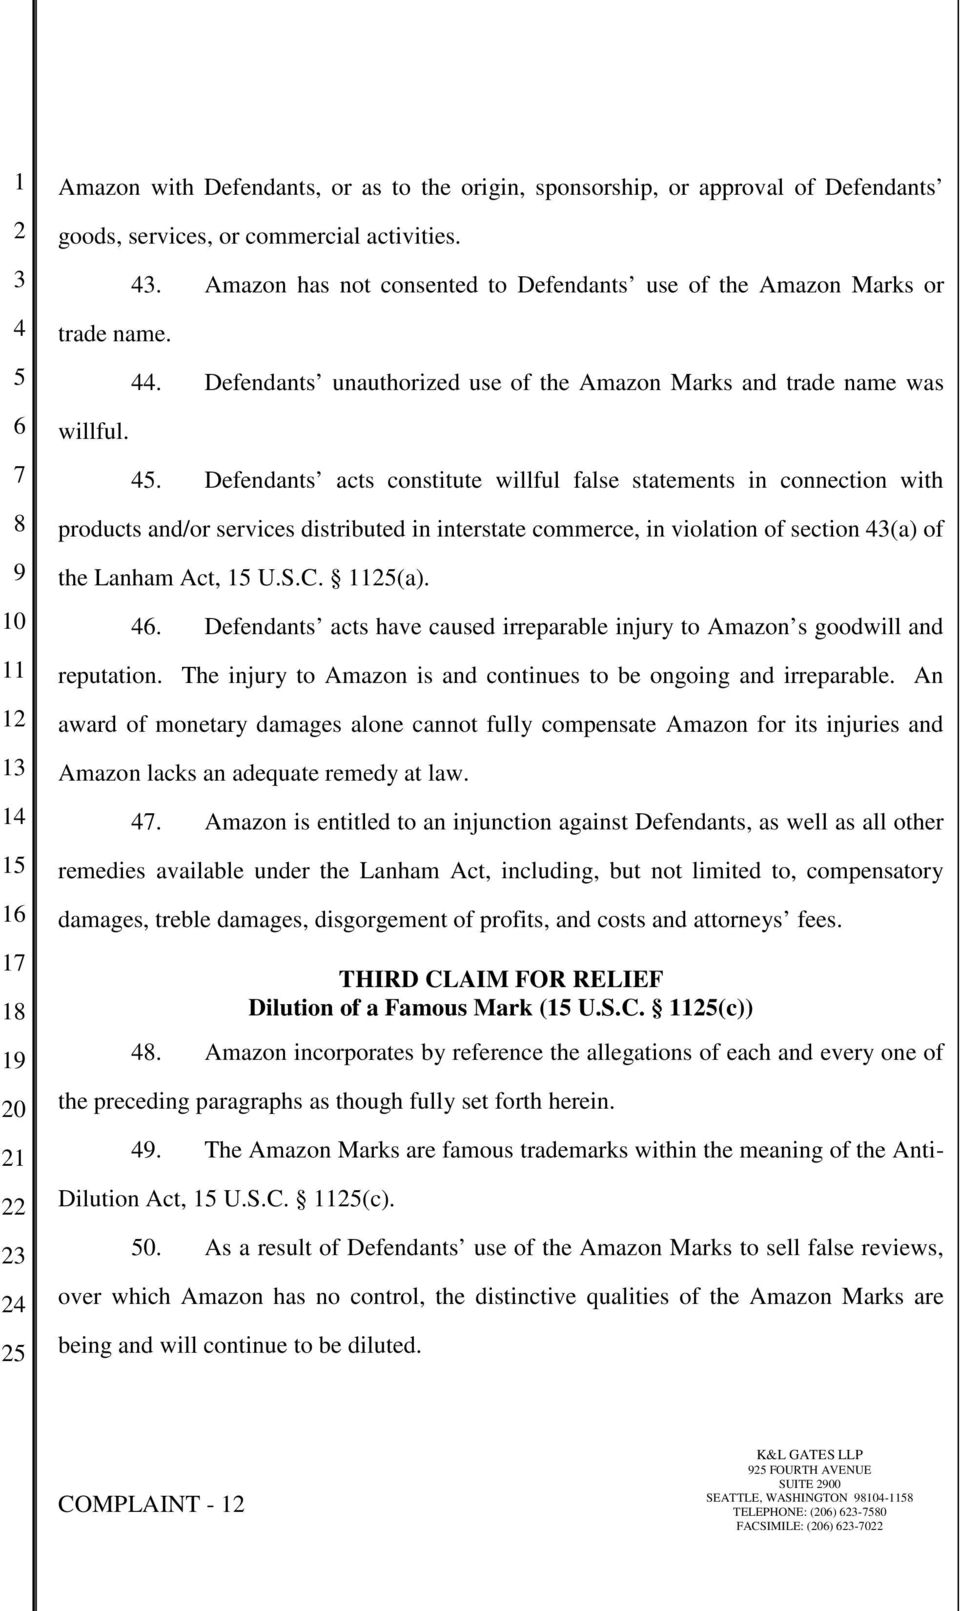 Defendants acts constitute willful false statements in connection with products and/or services distributed in interstate commerce, in violation of section (a)